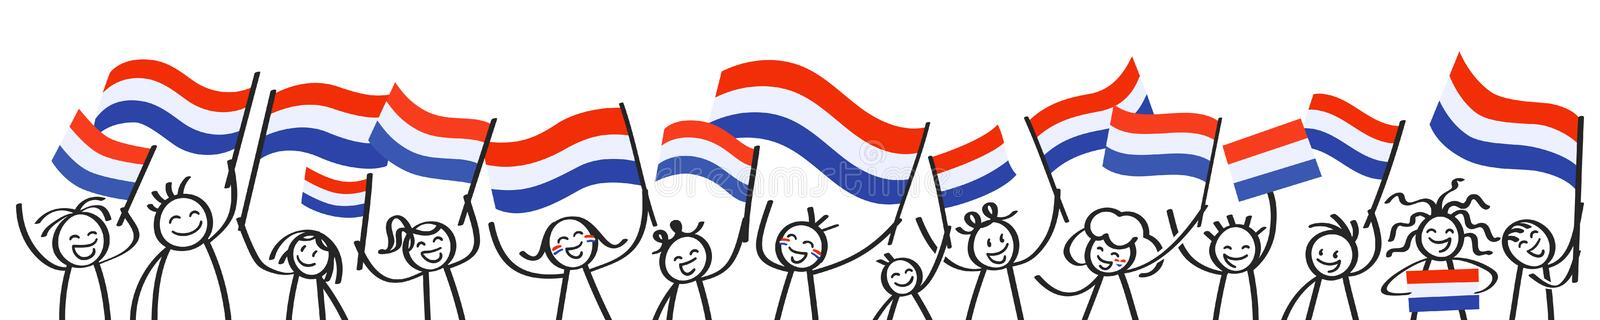 Cheering crowd of happy stick figures with Dutch national flags, smiling Netherlands supporters, sports fans stock illustration